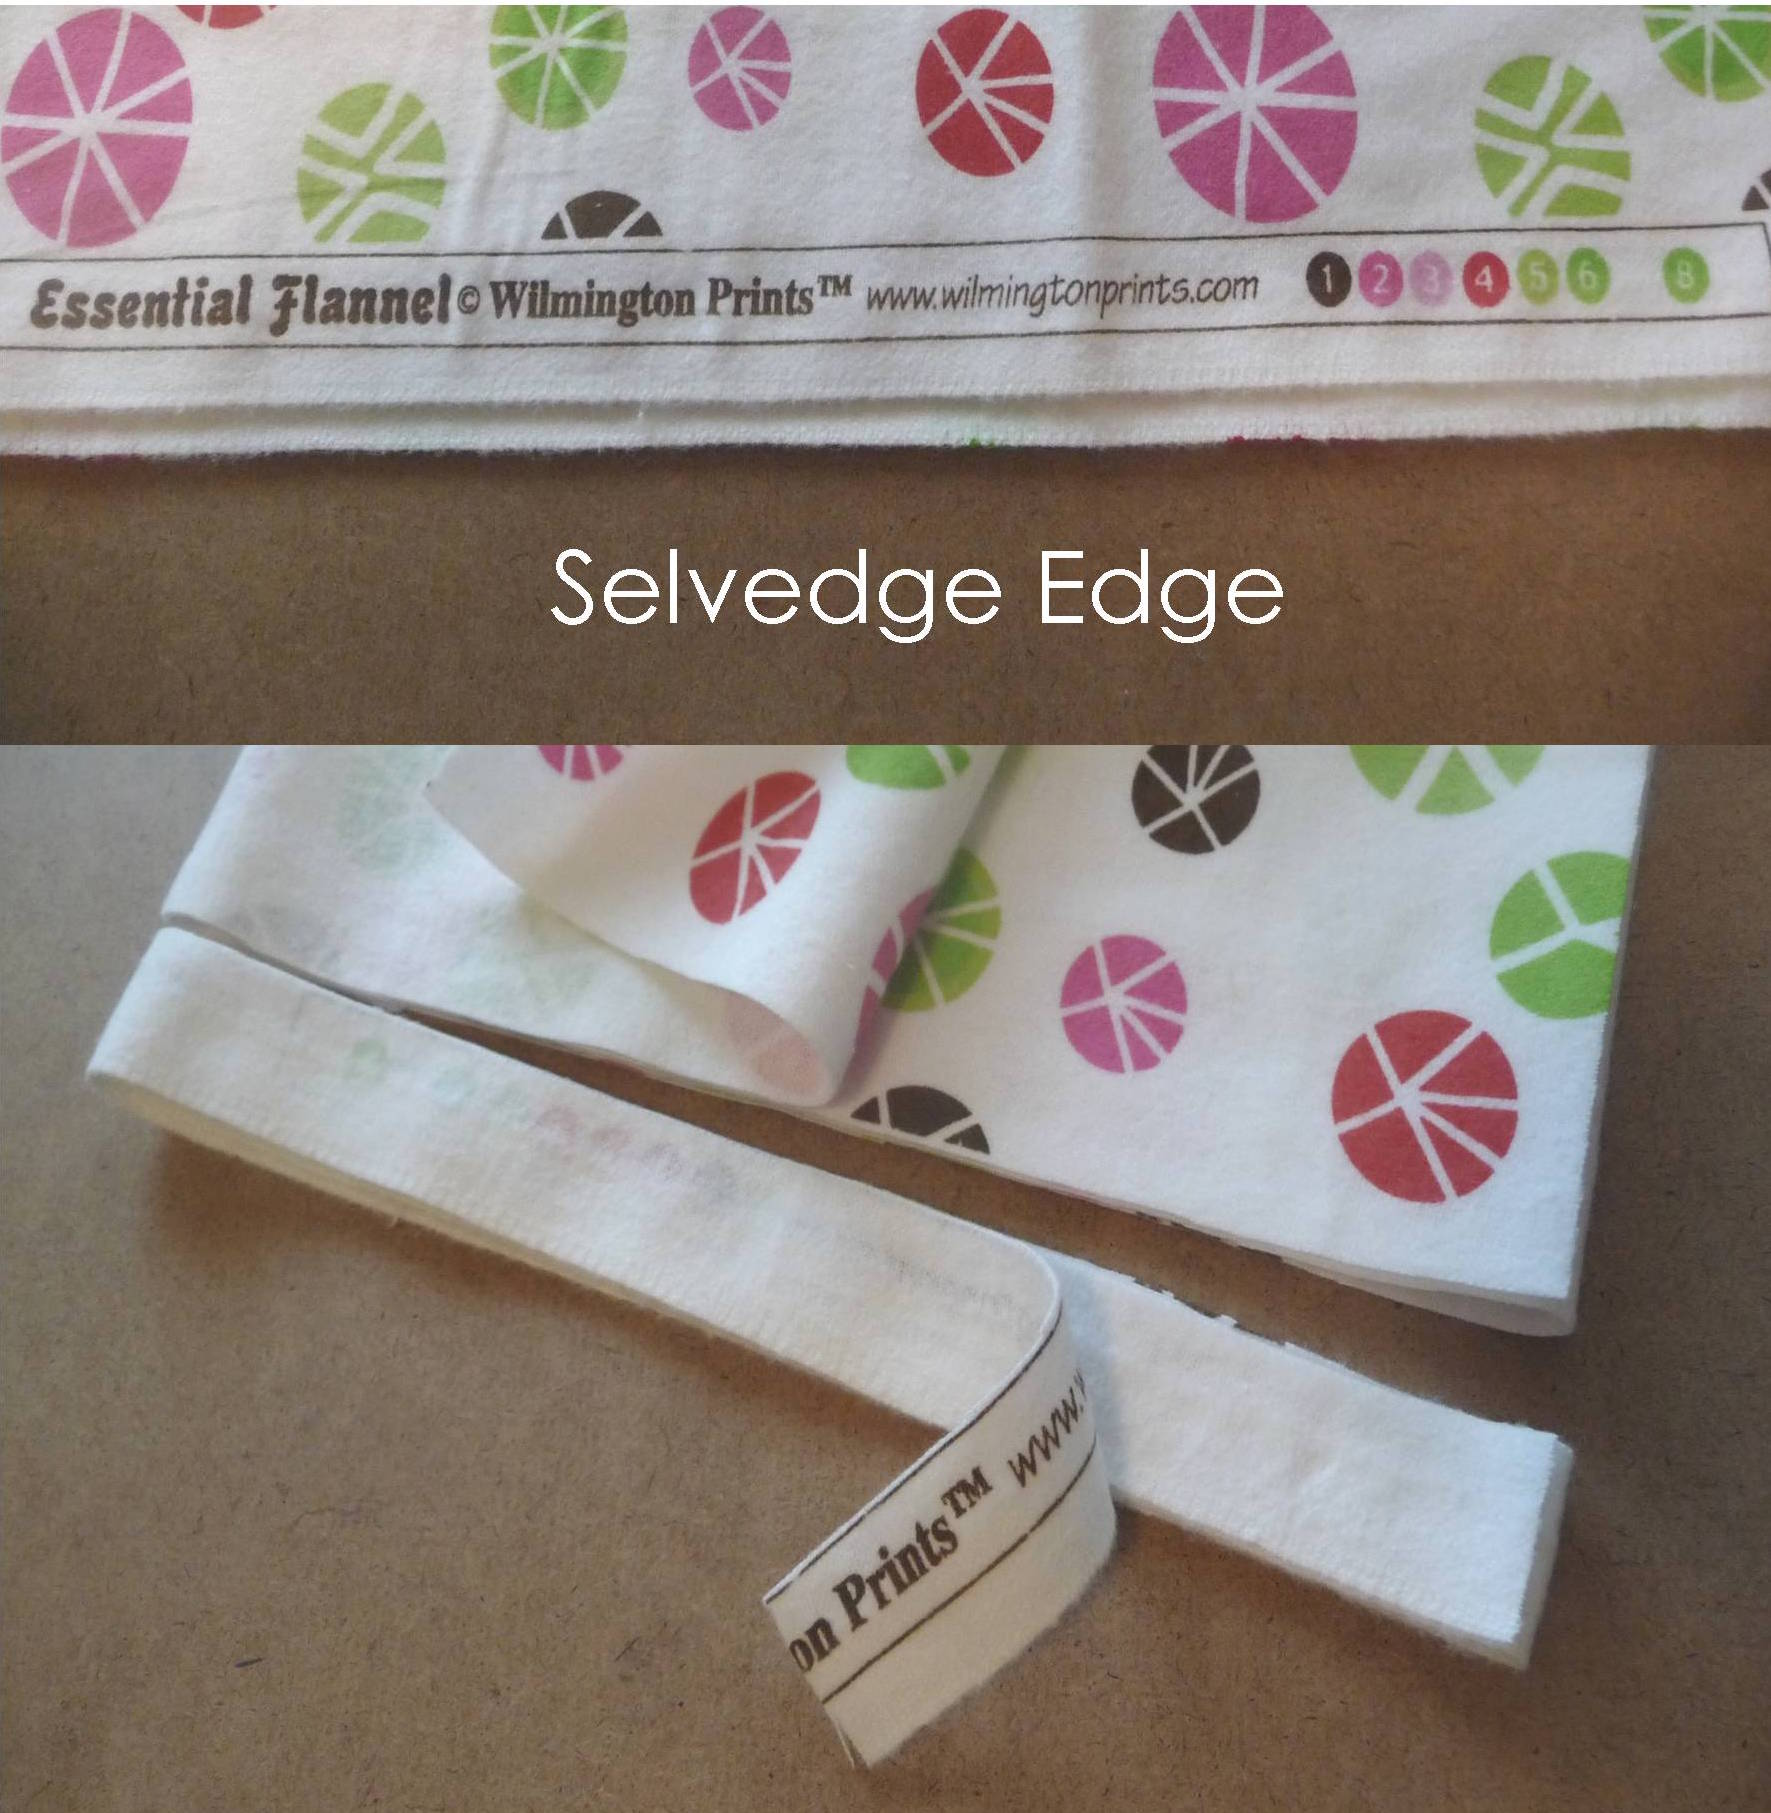 # 1 - Start by cutting of the selvedge edge that often has the designer, company name, etc. on it.